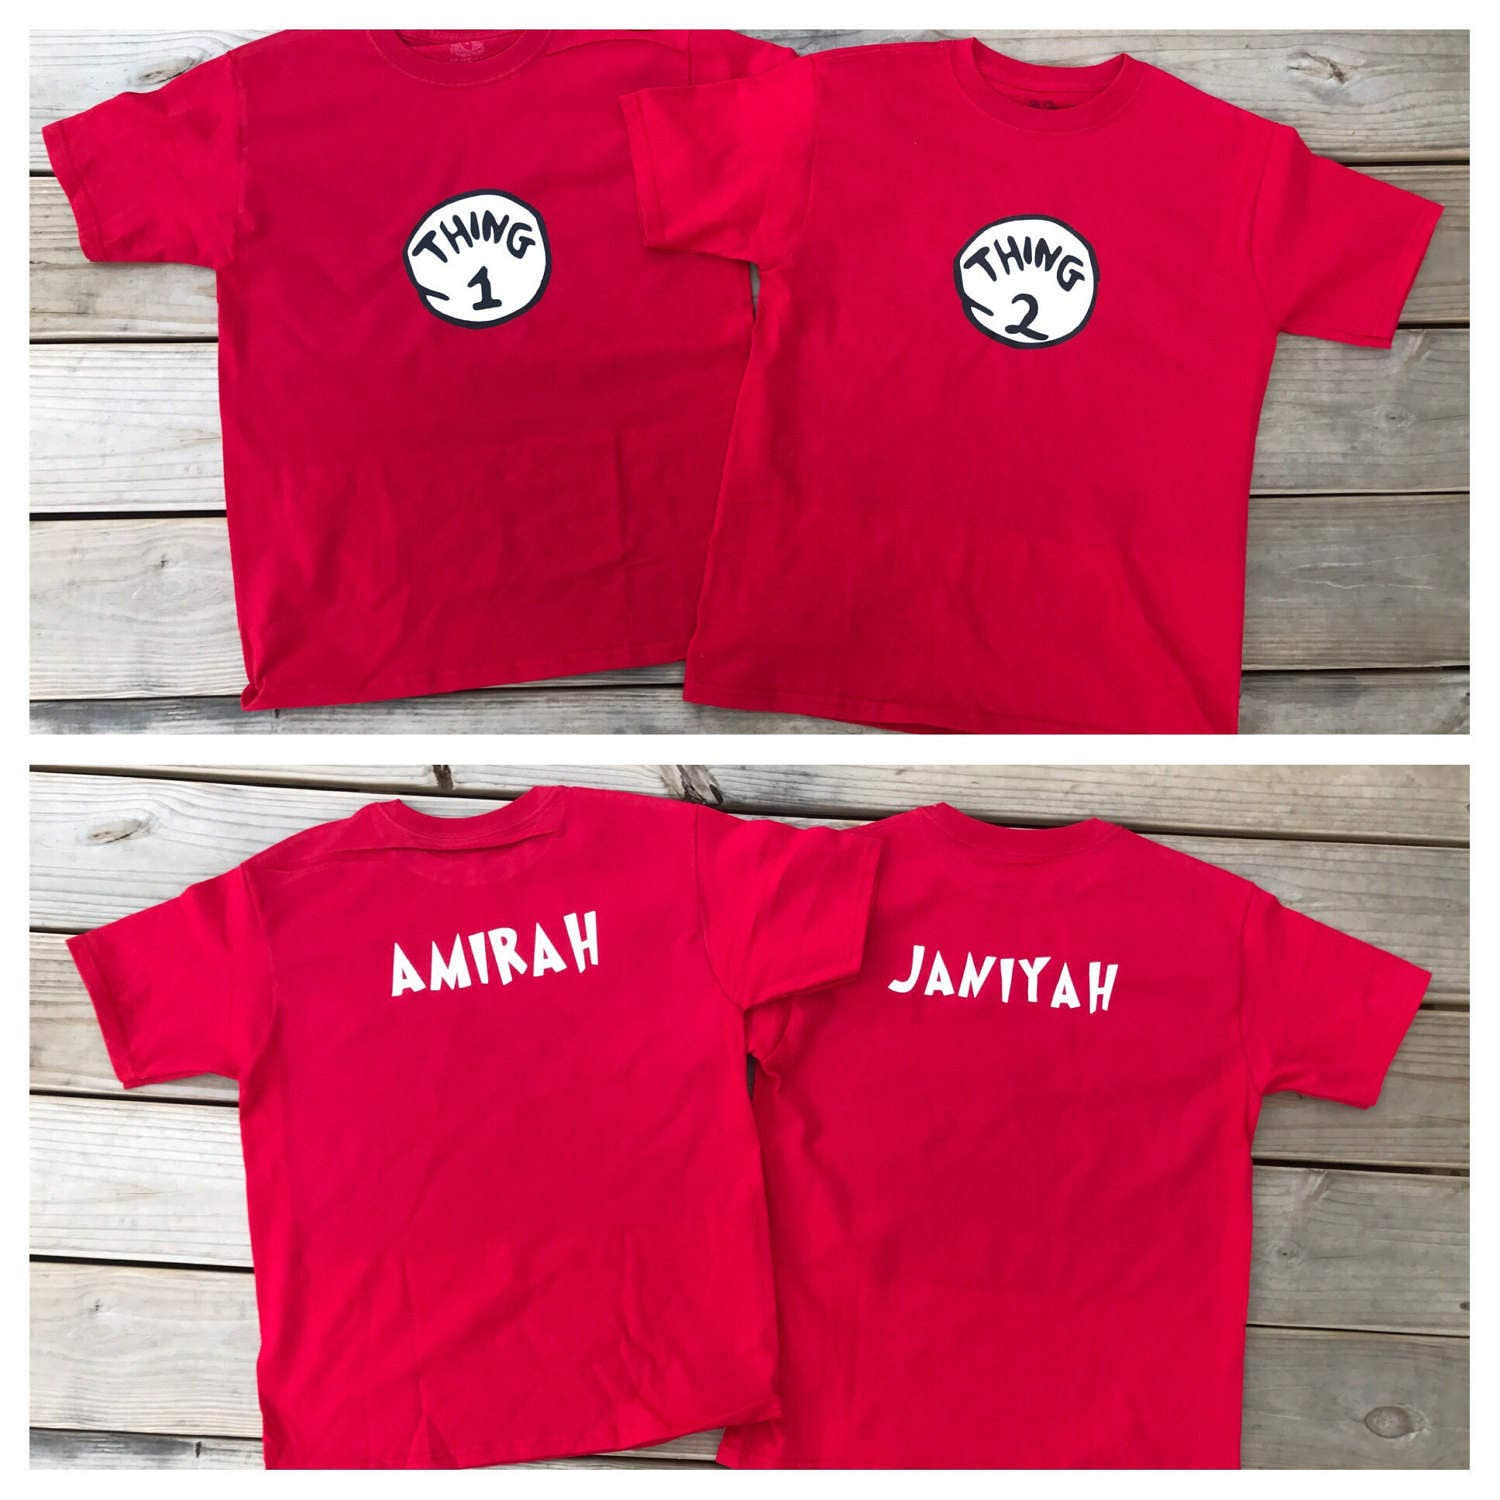 Thing 1 2 Shirts Kids Unisex With Names On Back